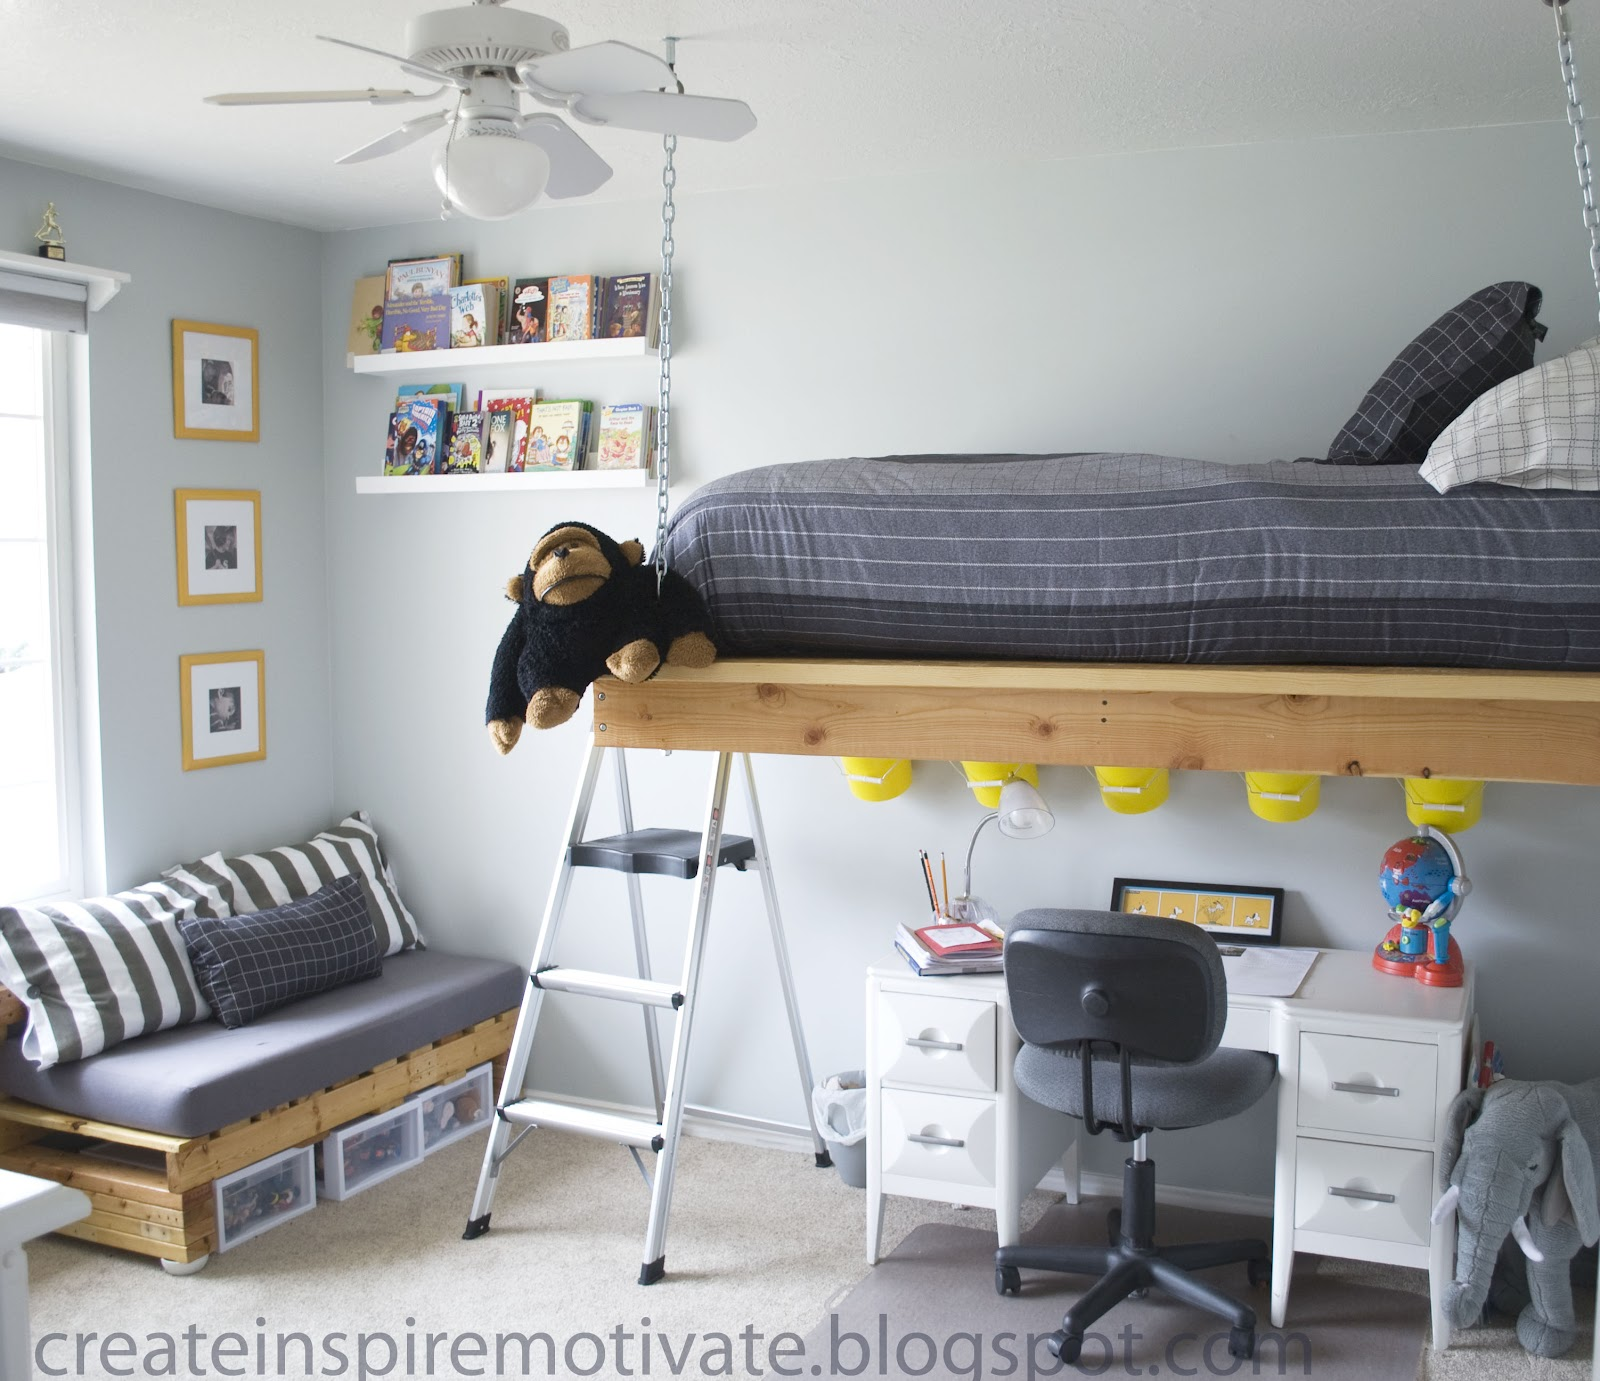 Bed Suspended From Ceiling Createinspiremotivate C 39s Room Part 1 Hanging Bed